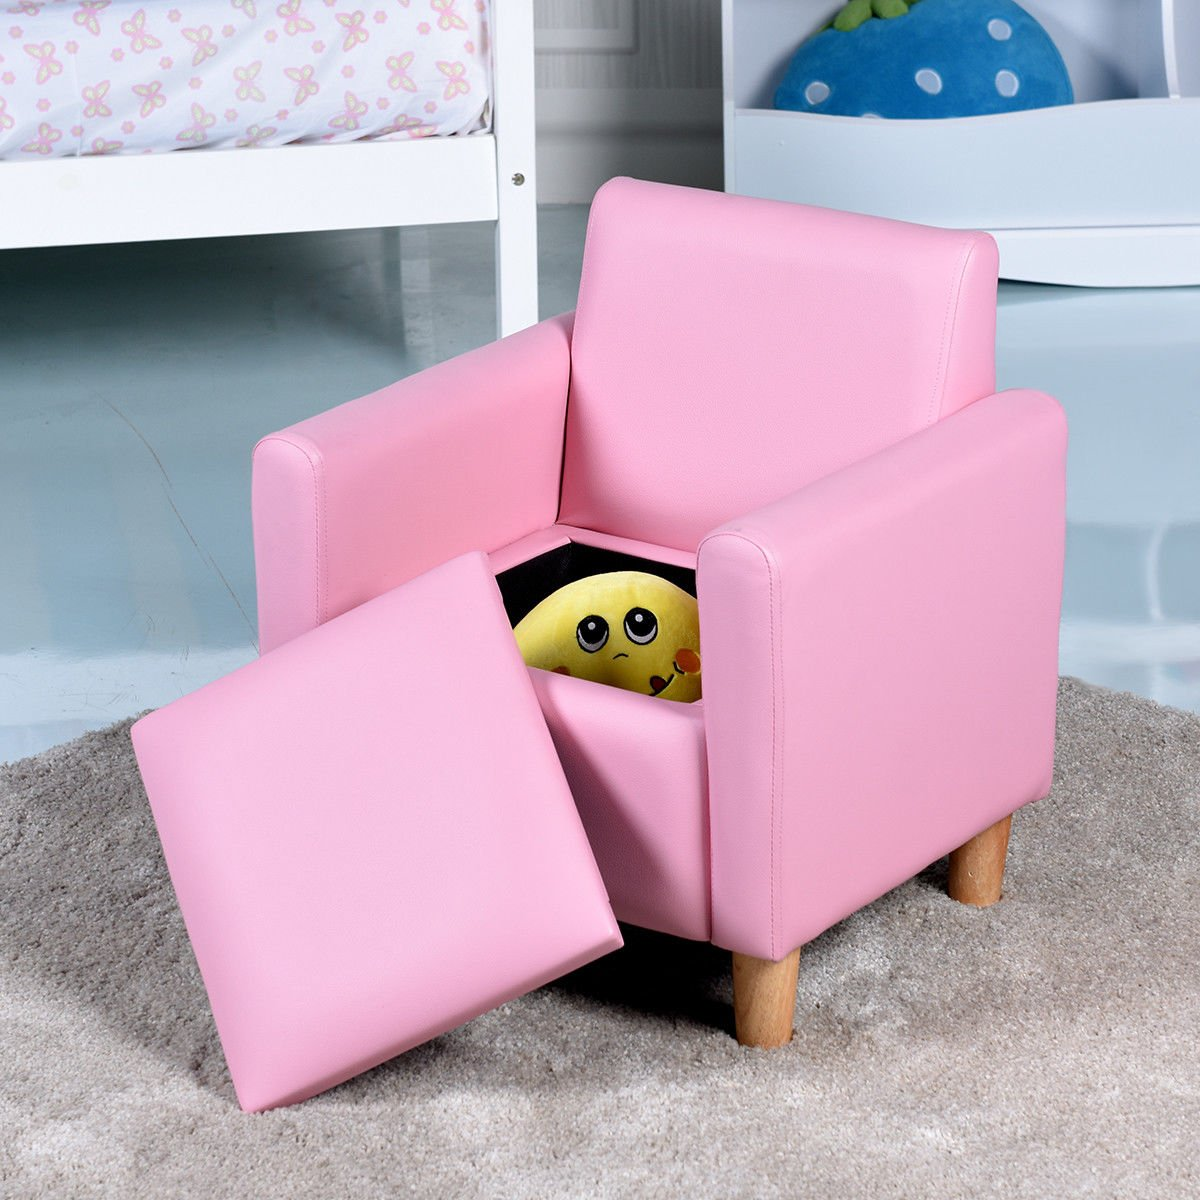 Costzon Kids Sofa, Upholstered Armrest, Sturdy Wood Construction, Toddler Couch With Storage Box (Single Seat, Pink)